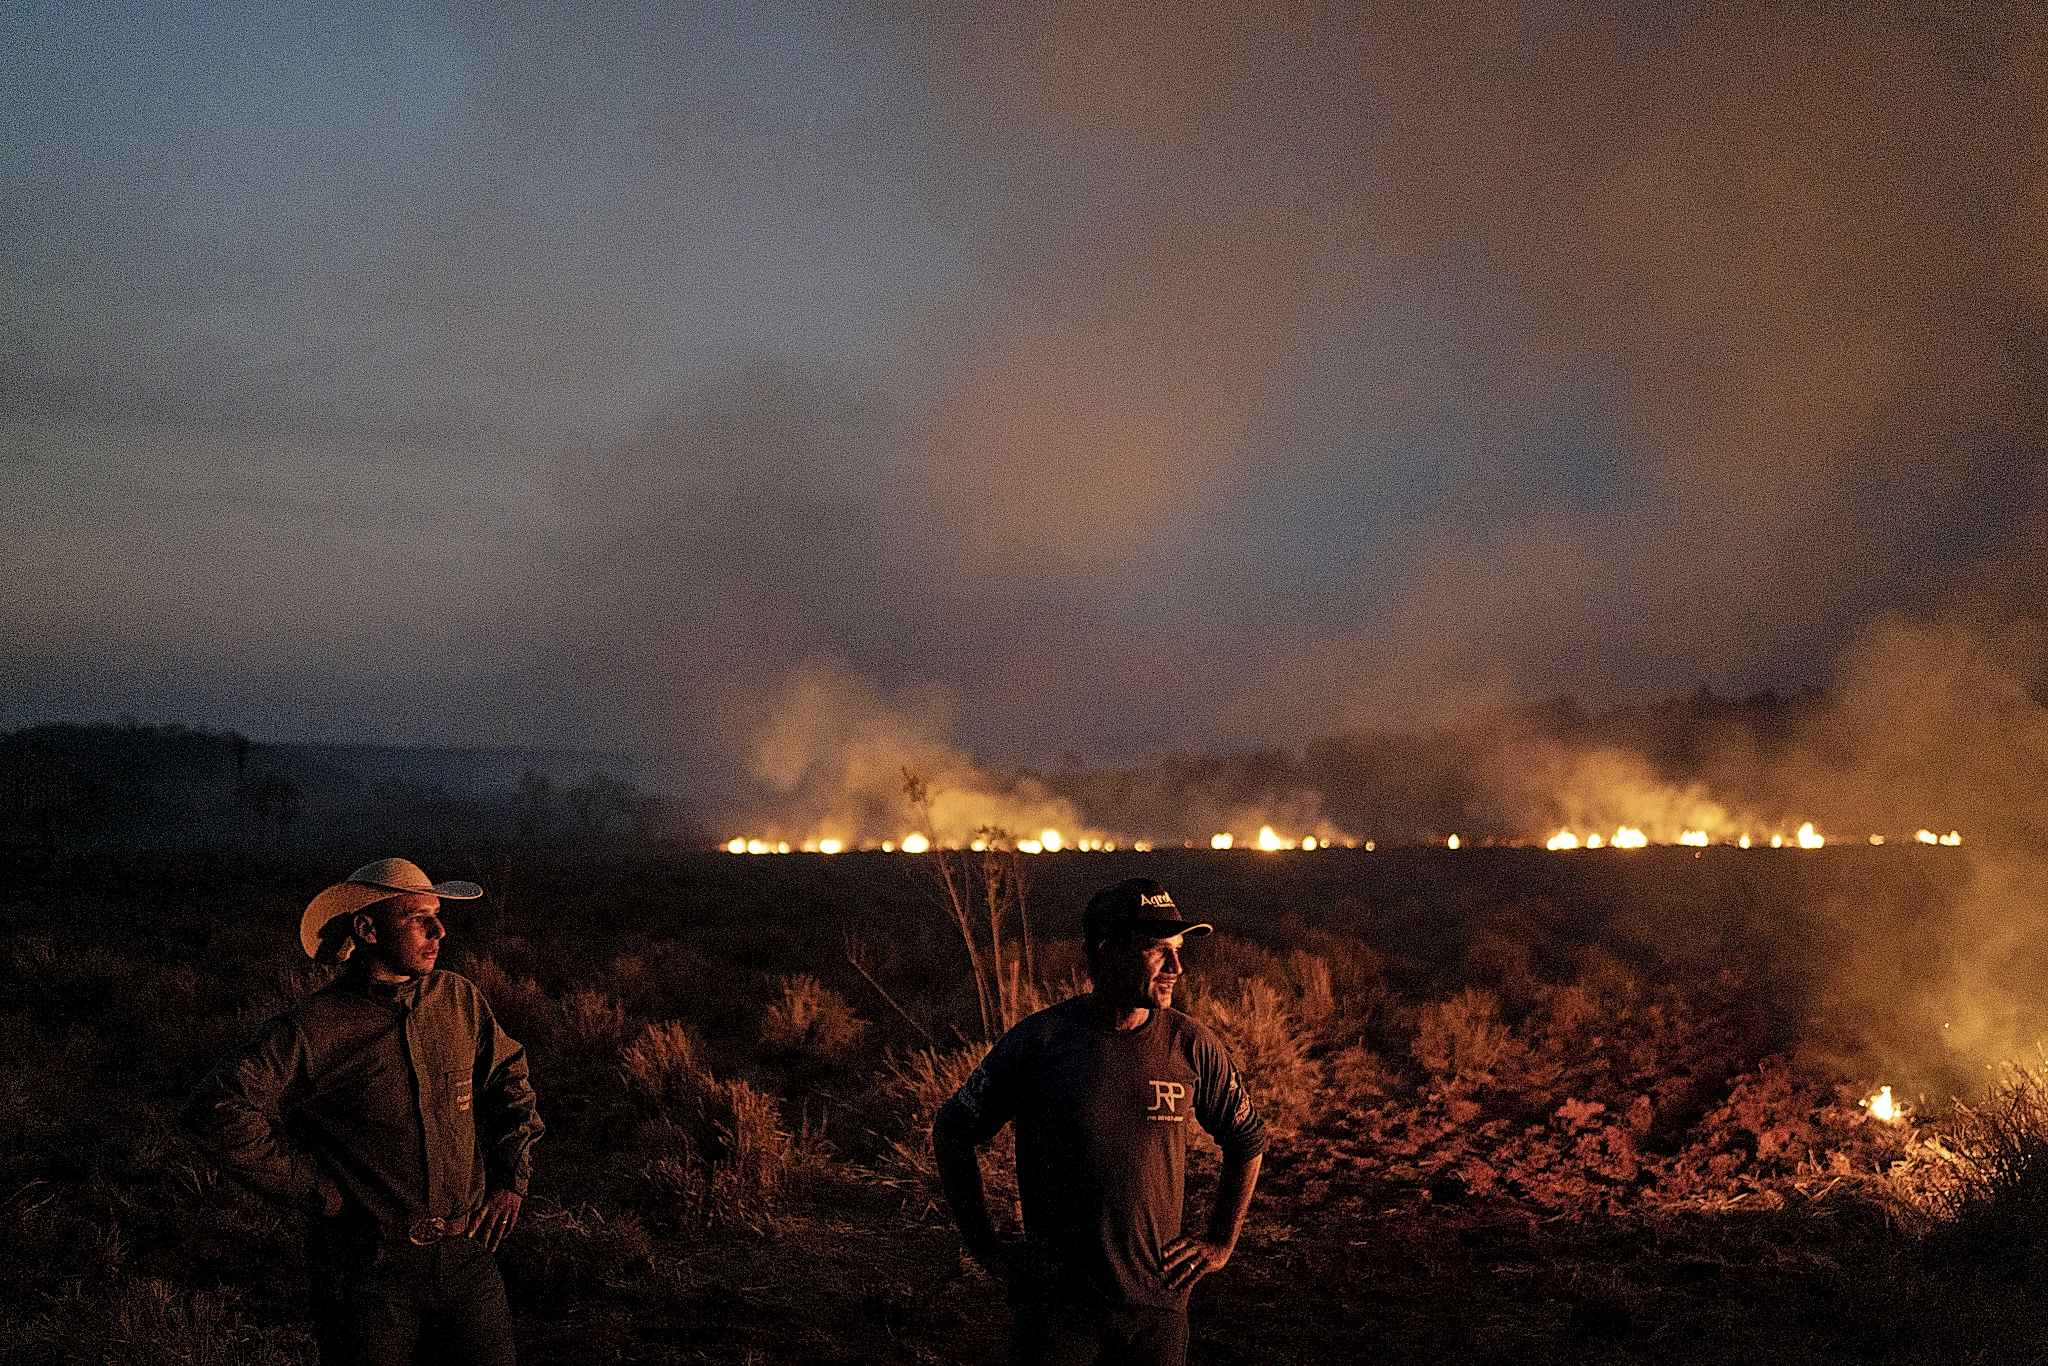 Neri dos Santos Silva, center, watches an encroaching fire threat on Friday after digging trenches to keep the flames from spreading to the farm he works on.